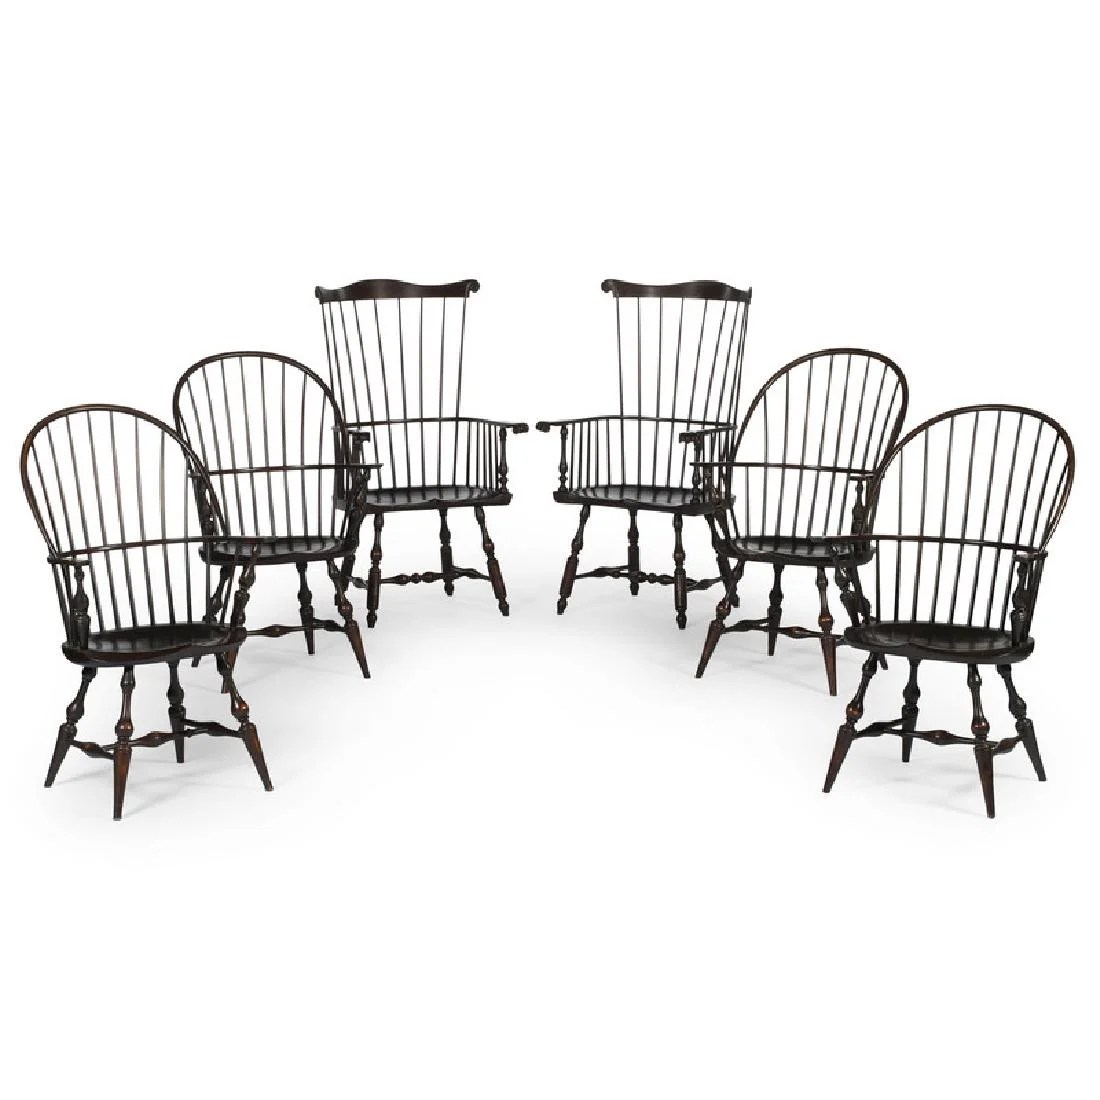 Windsor Chairs Black D R Dimes Windsor Chairs Oct 6 2018 Cowan S Auctions In Oh On Liveauctioneers